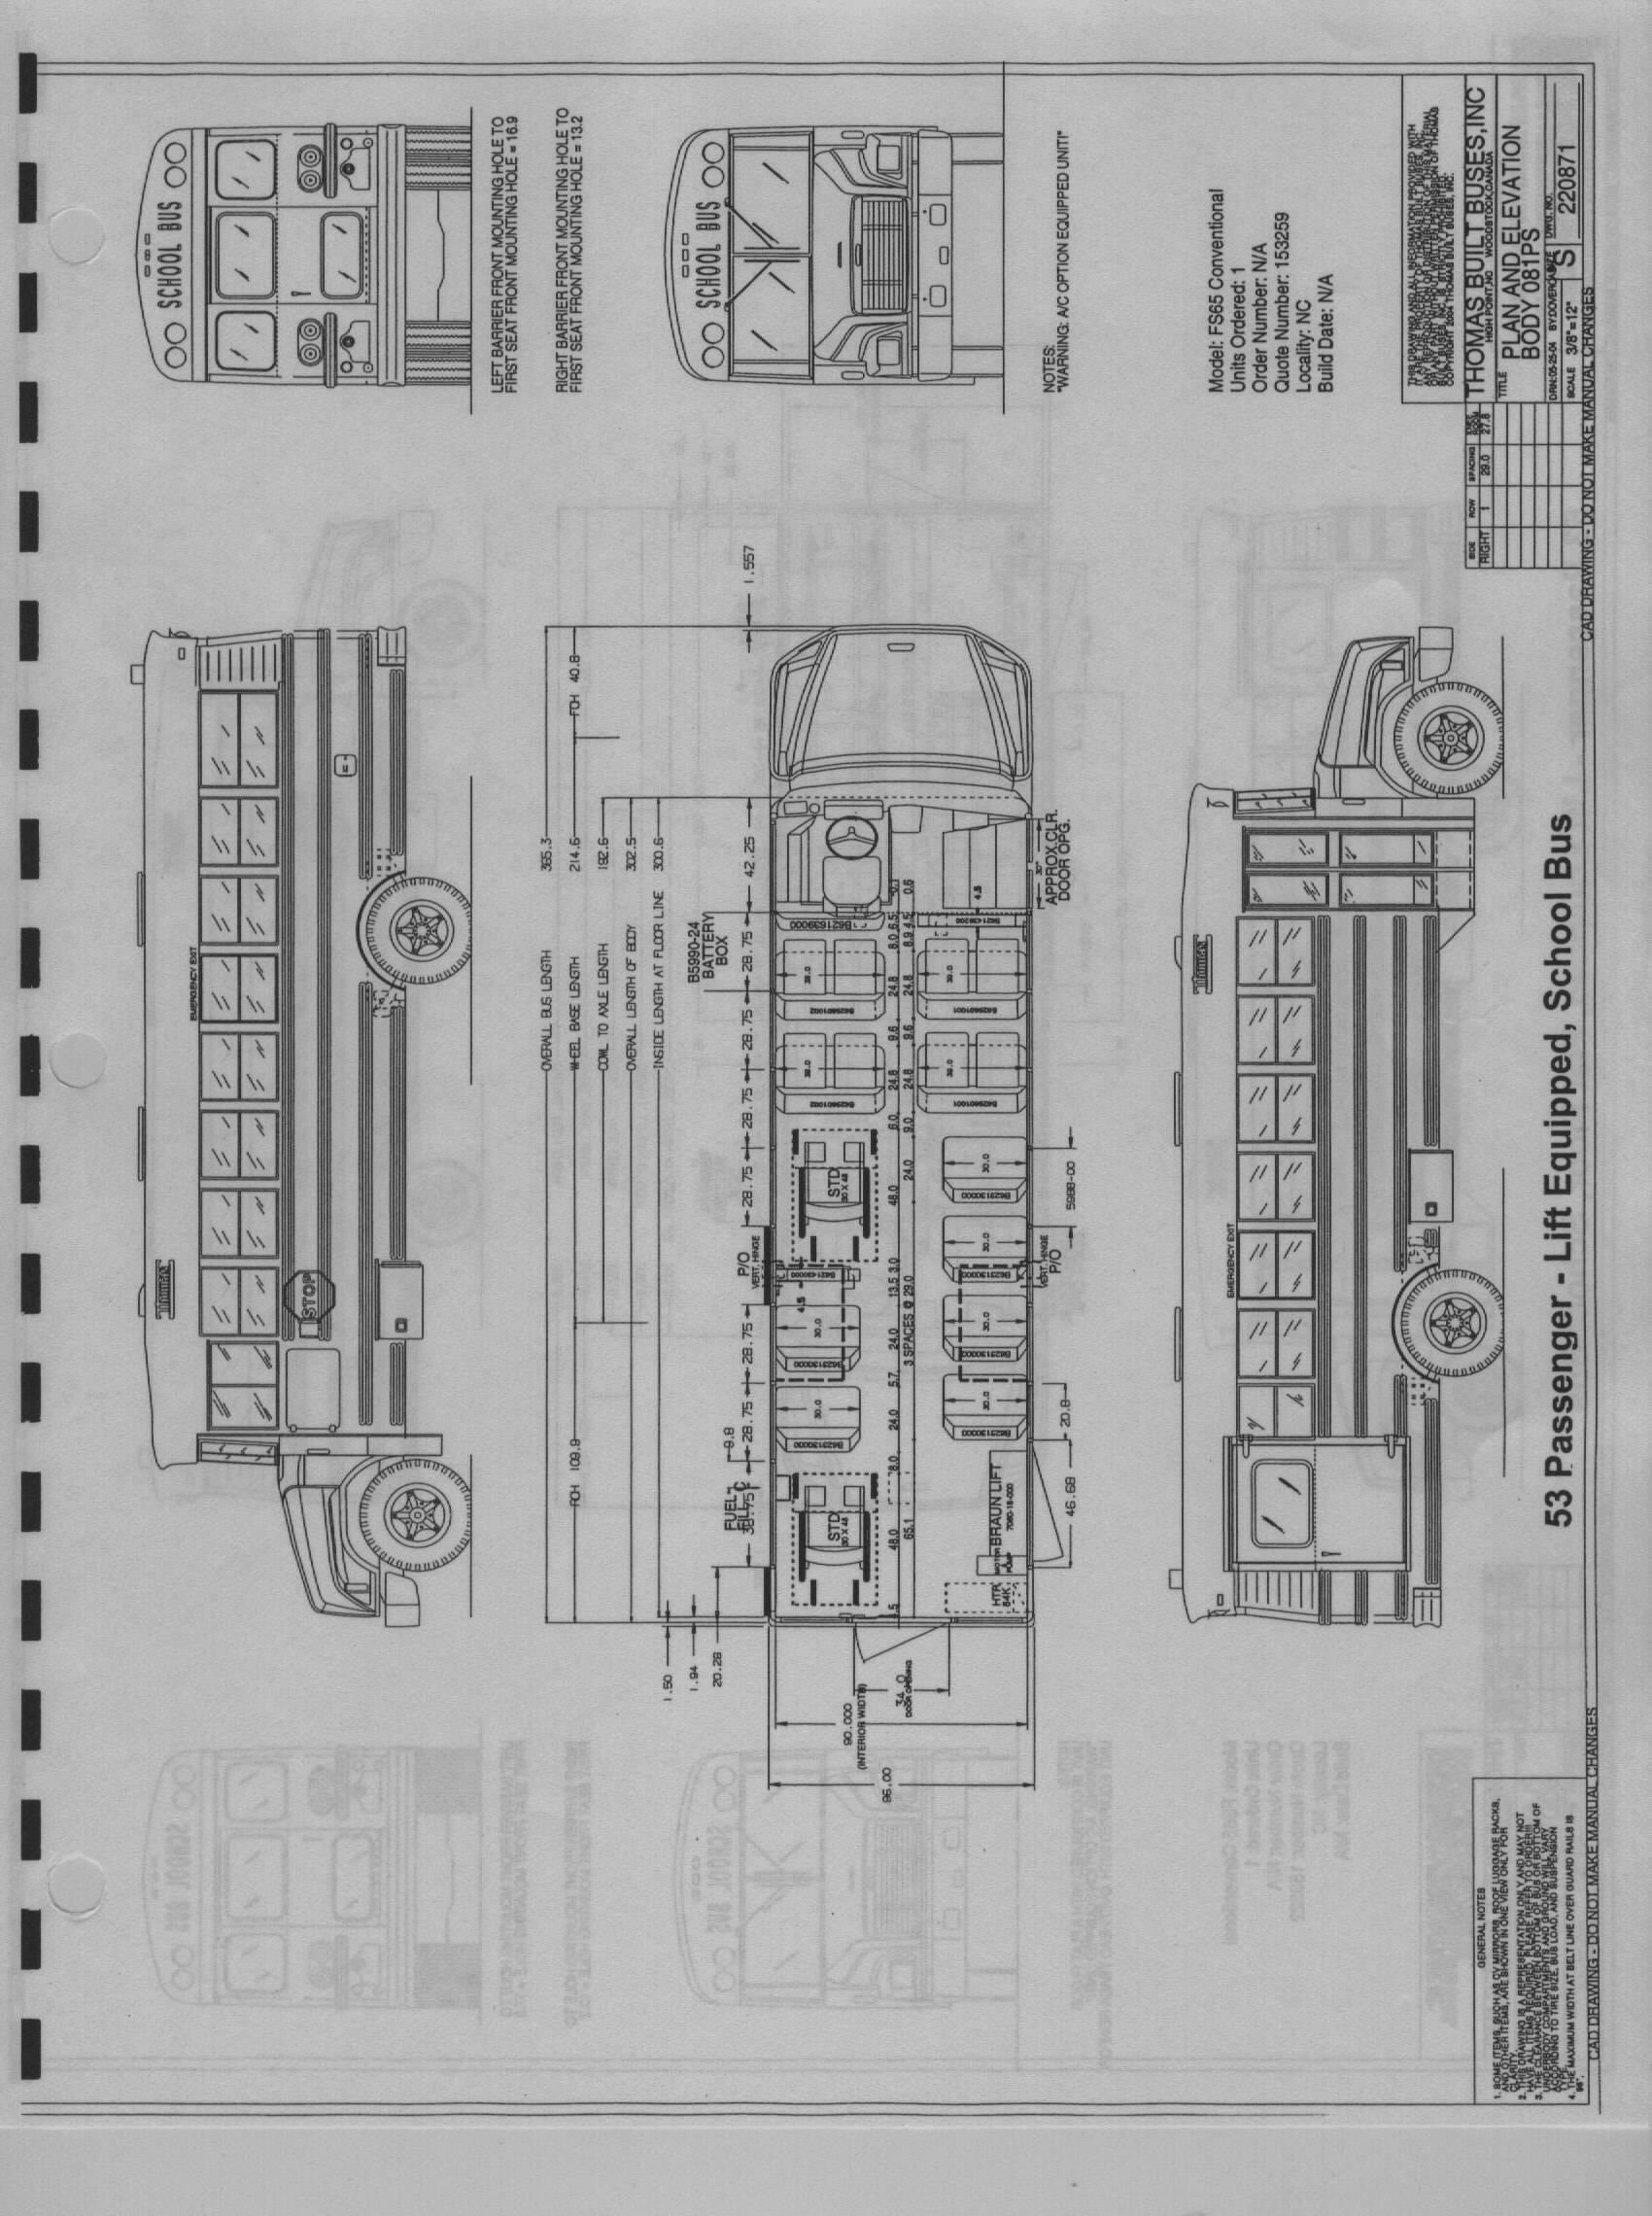 school bus dimensions diagram girardin school bus fuse box